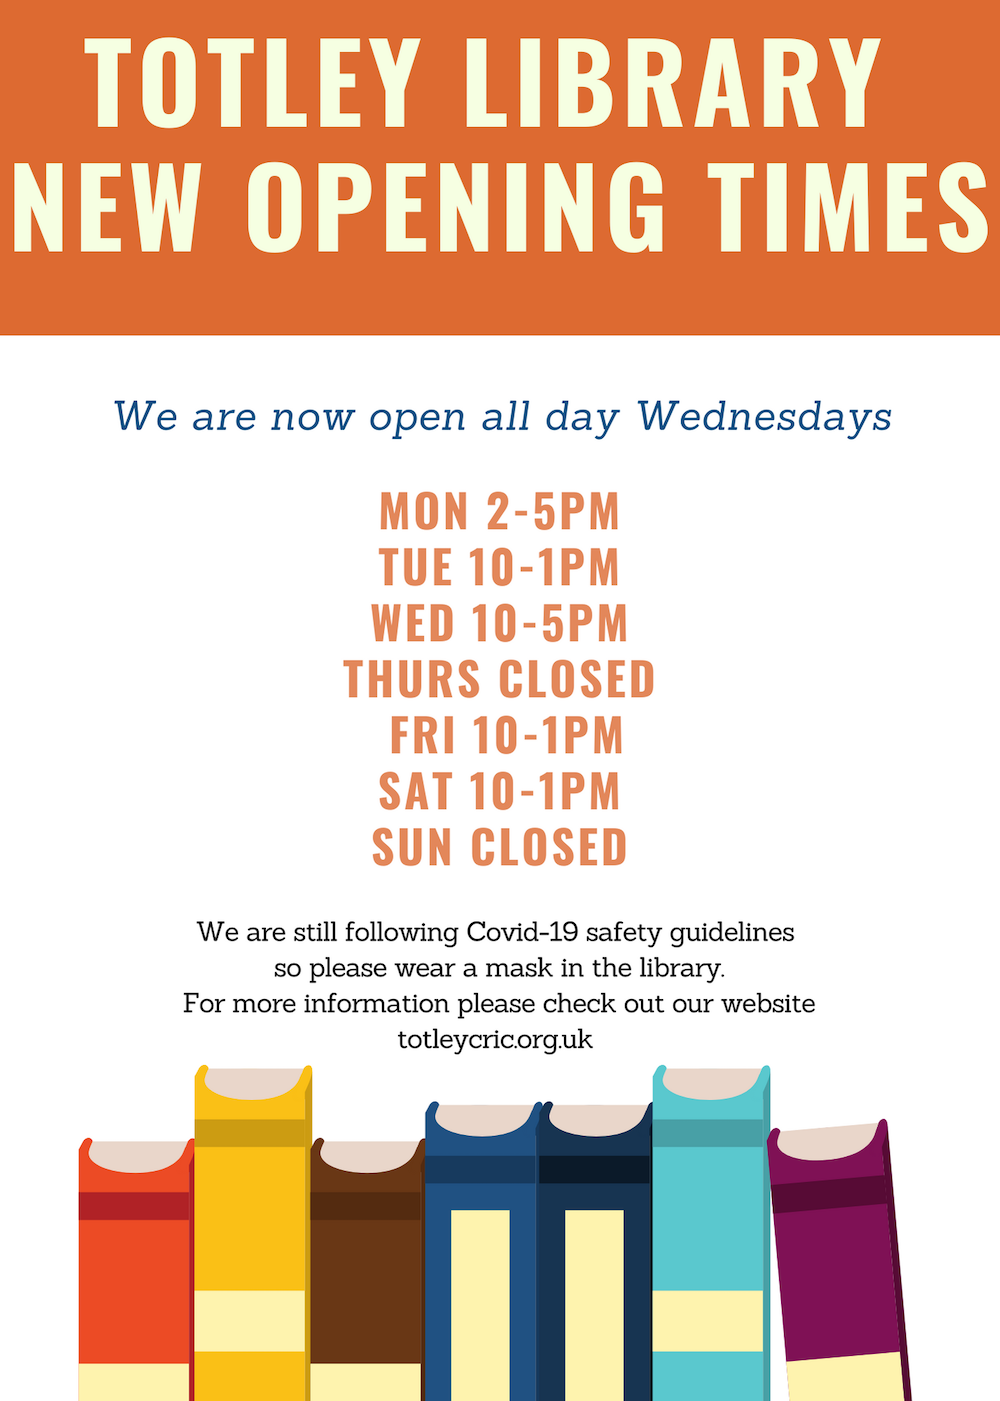 We are now open all day Wednesdays